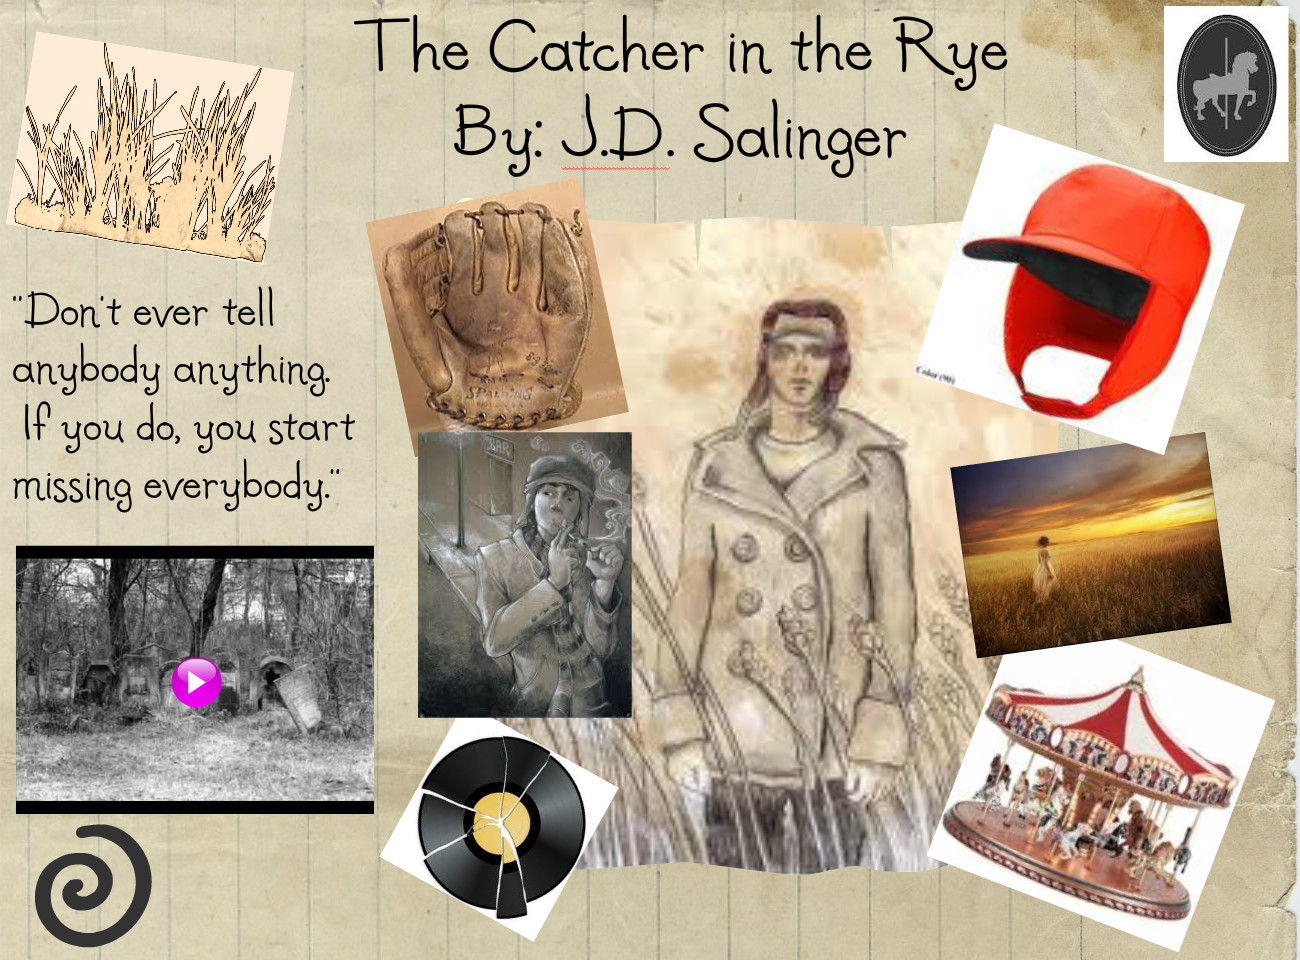 Essay about catcher in the rye symbols